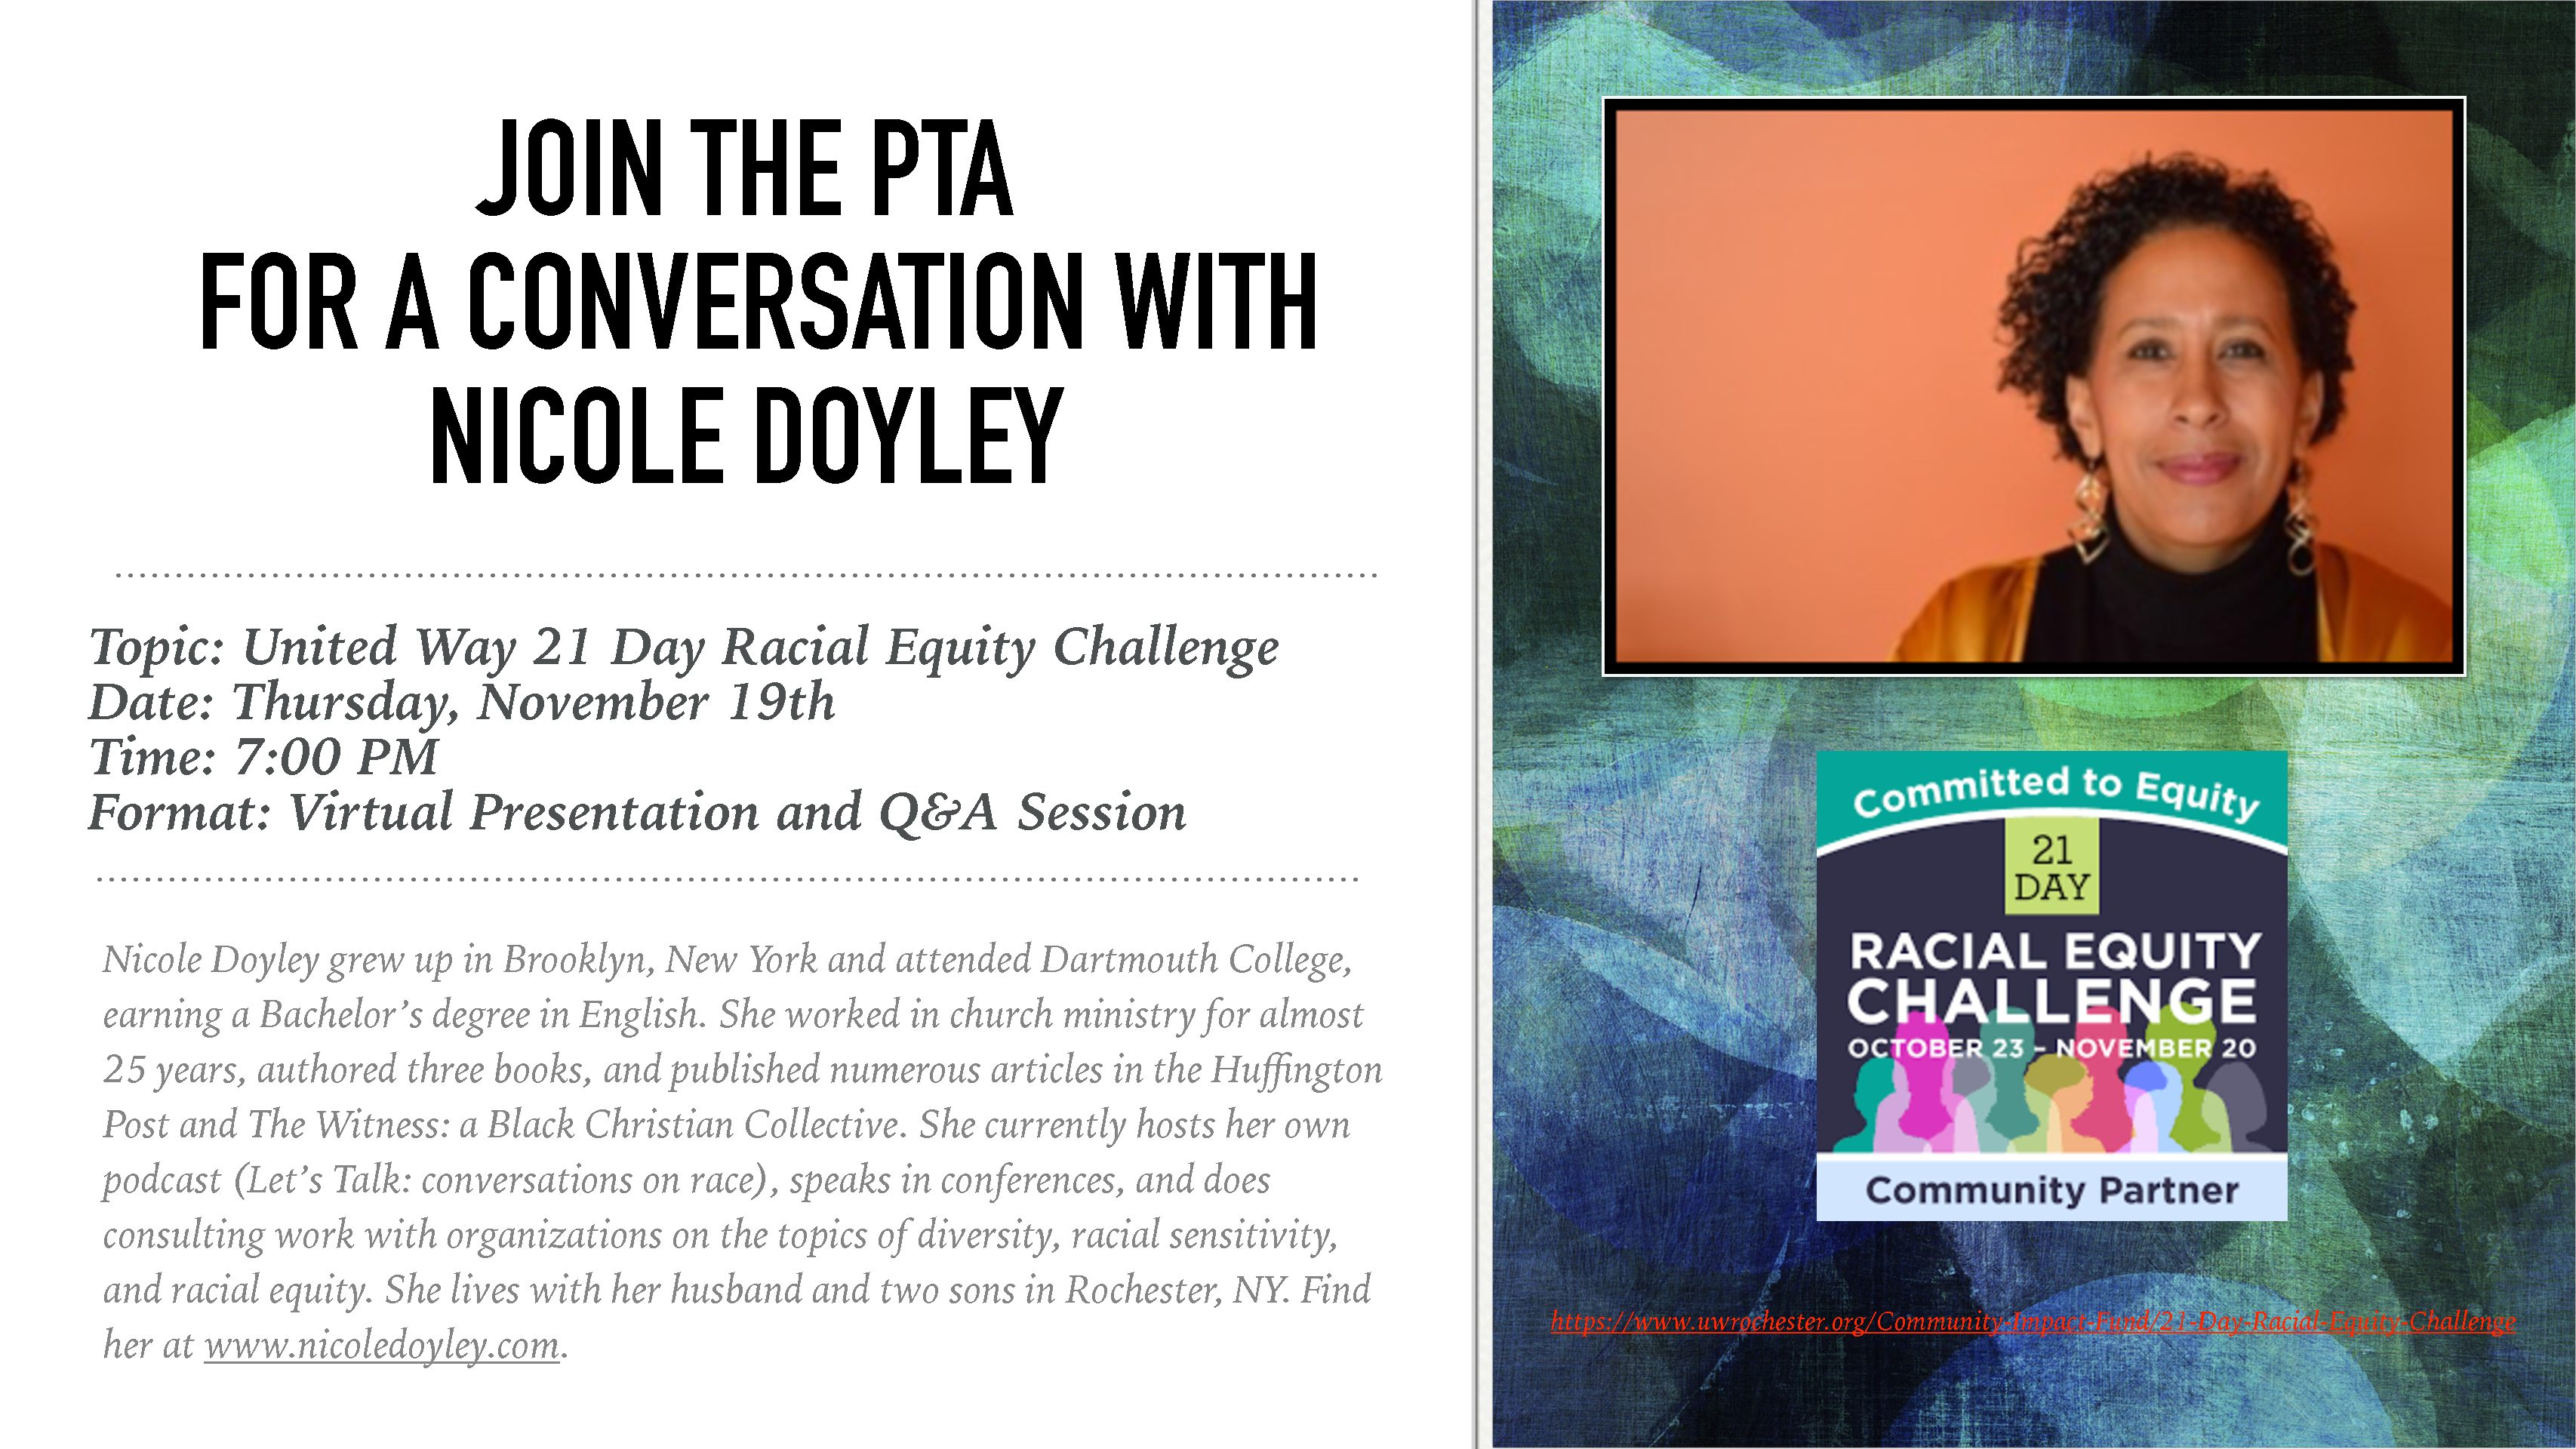 Join the PTA for a conversation with Nicole Doyley